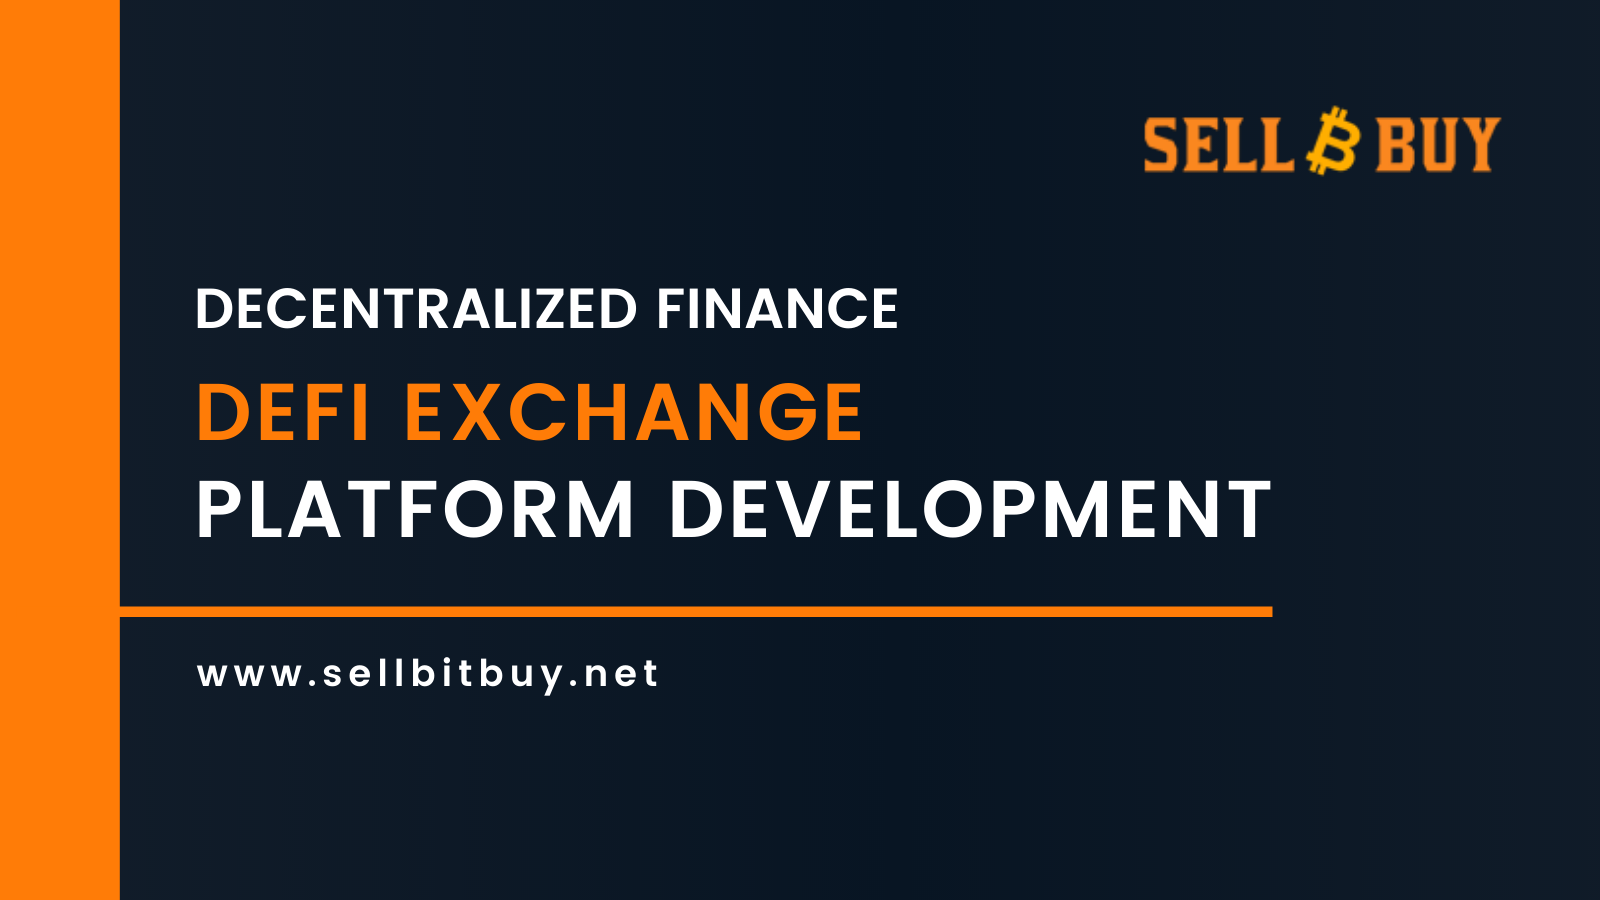 DeFi Decentralized Exchange Platform Development Company